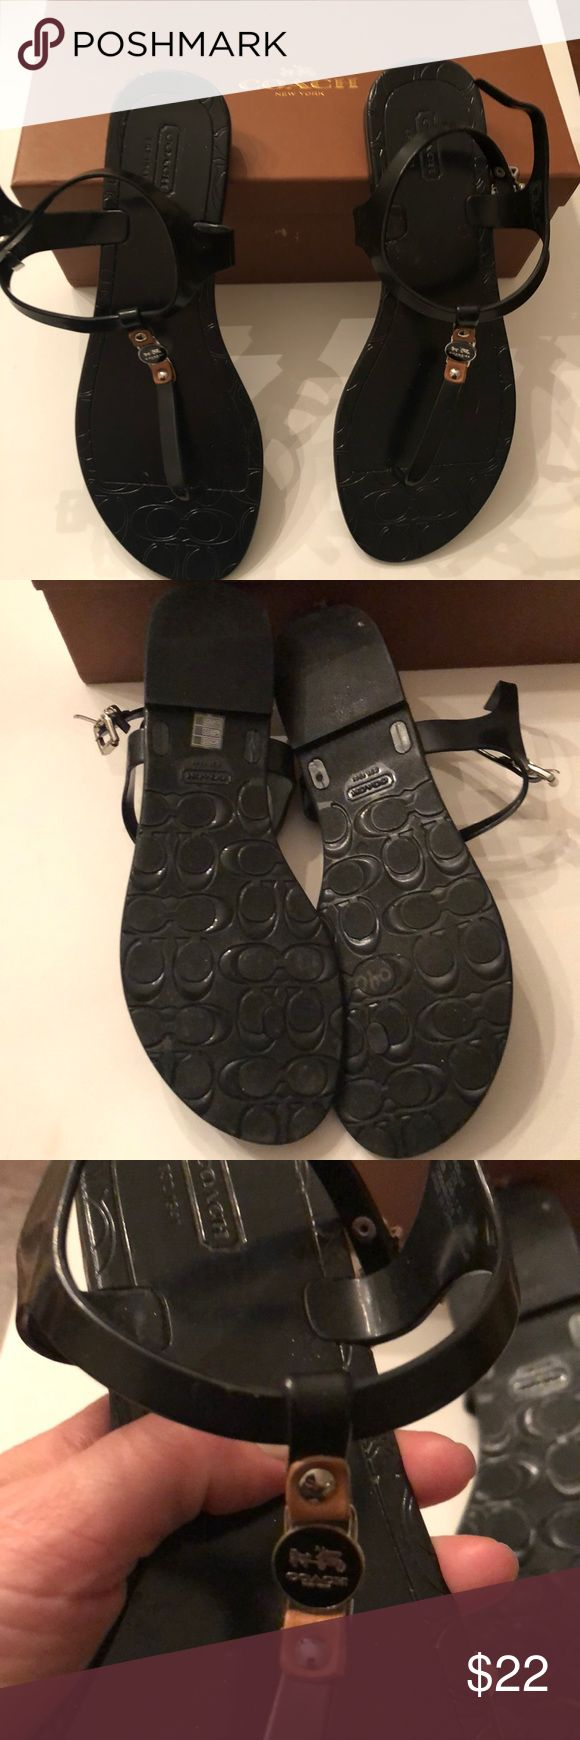 Coach Piccadilly jelly sandals size 10 Coach Piccadilly jelly sandals size 10 style no A6307. Excellent condition used once. They are plastic jelly sandals. Coach Shoes Sandals